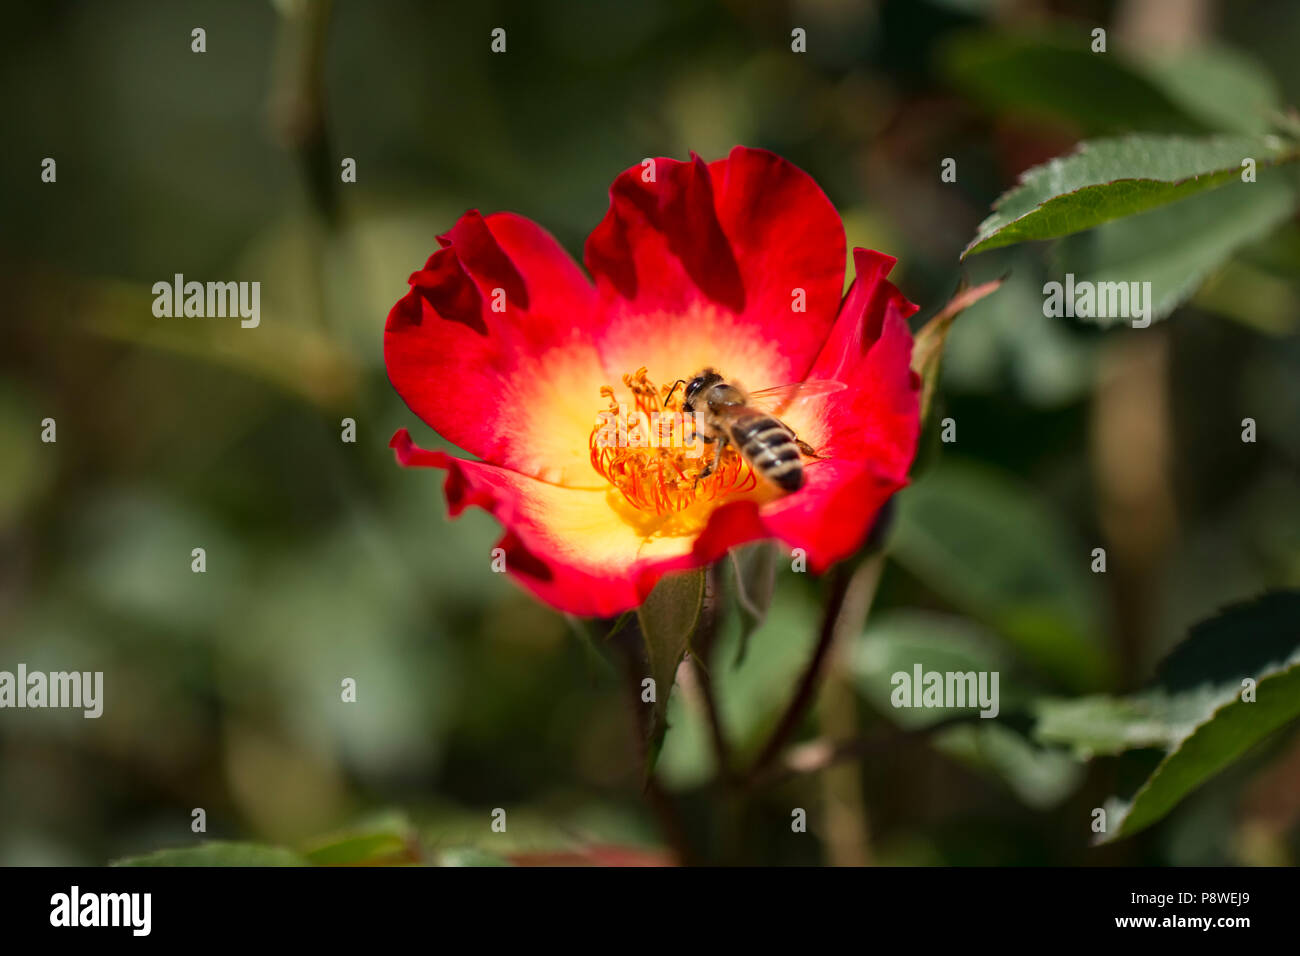 honey bee collects flower nectar from a red flower - Stock Image